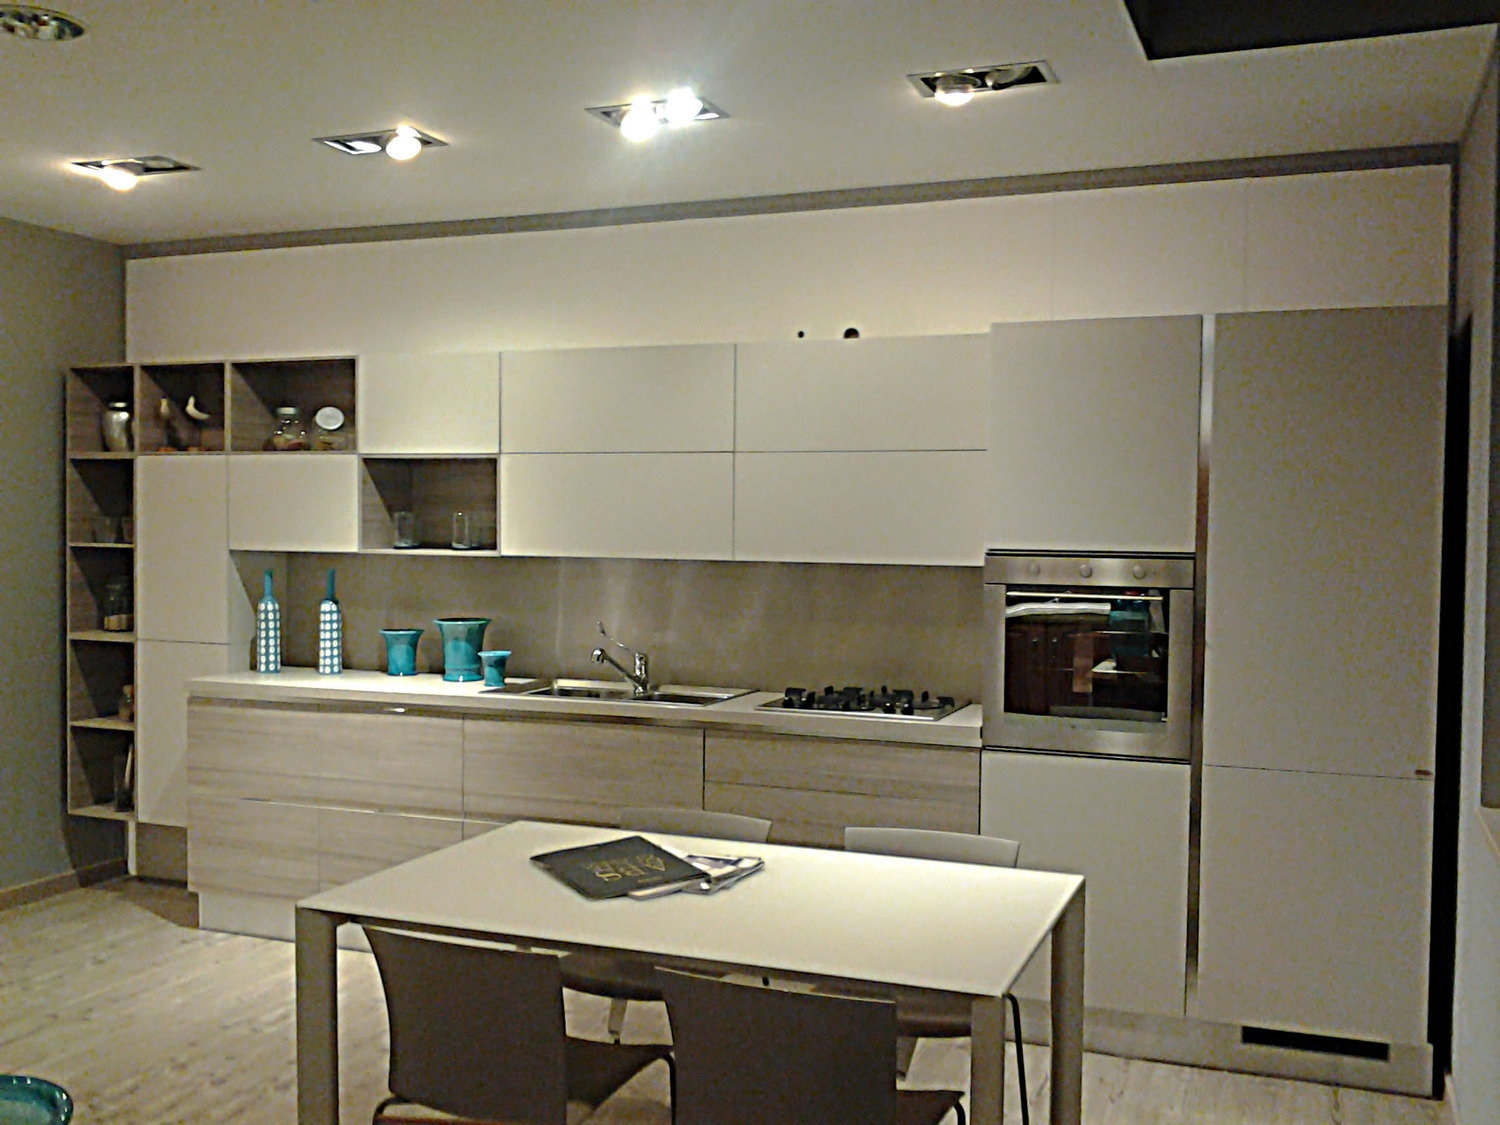 Emejing cucine scavolini outlet milano ideas home ideas - Costi cucine scavolini ...